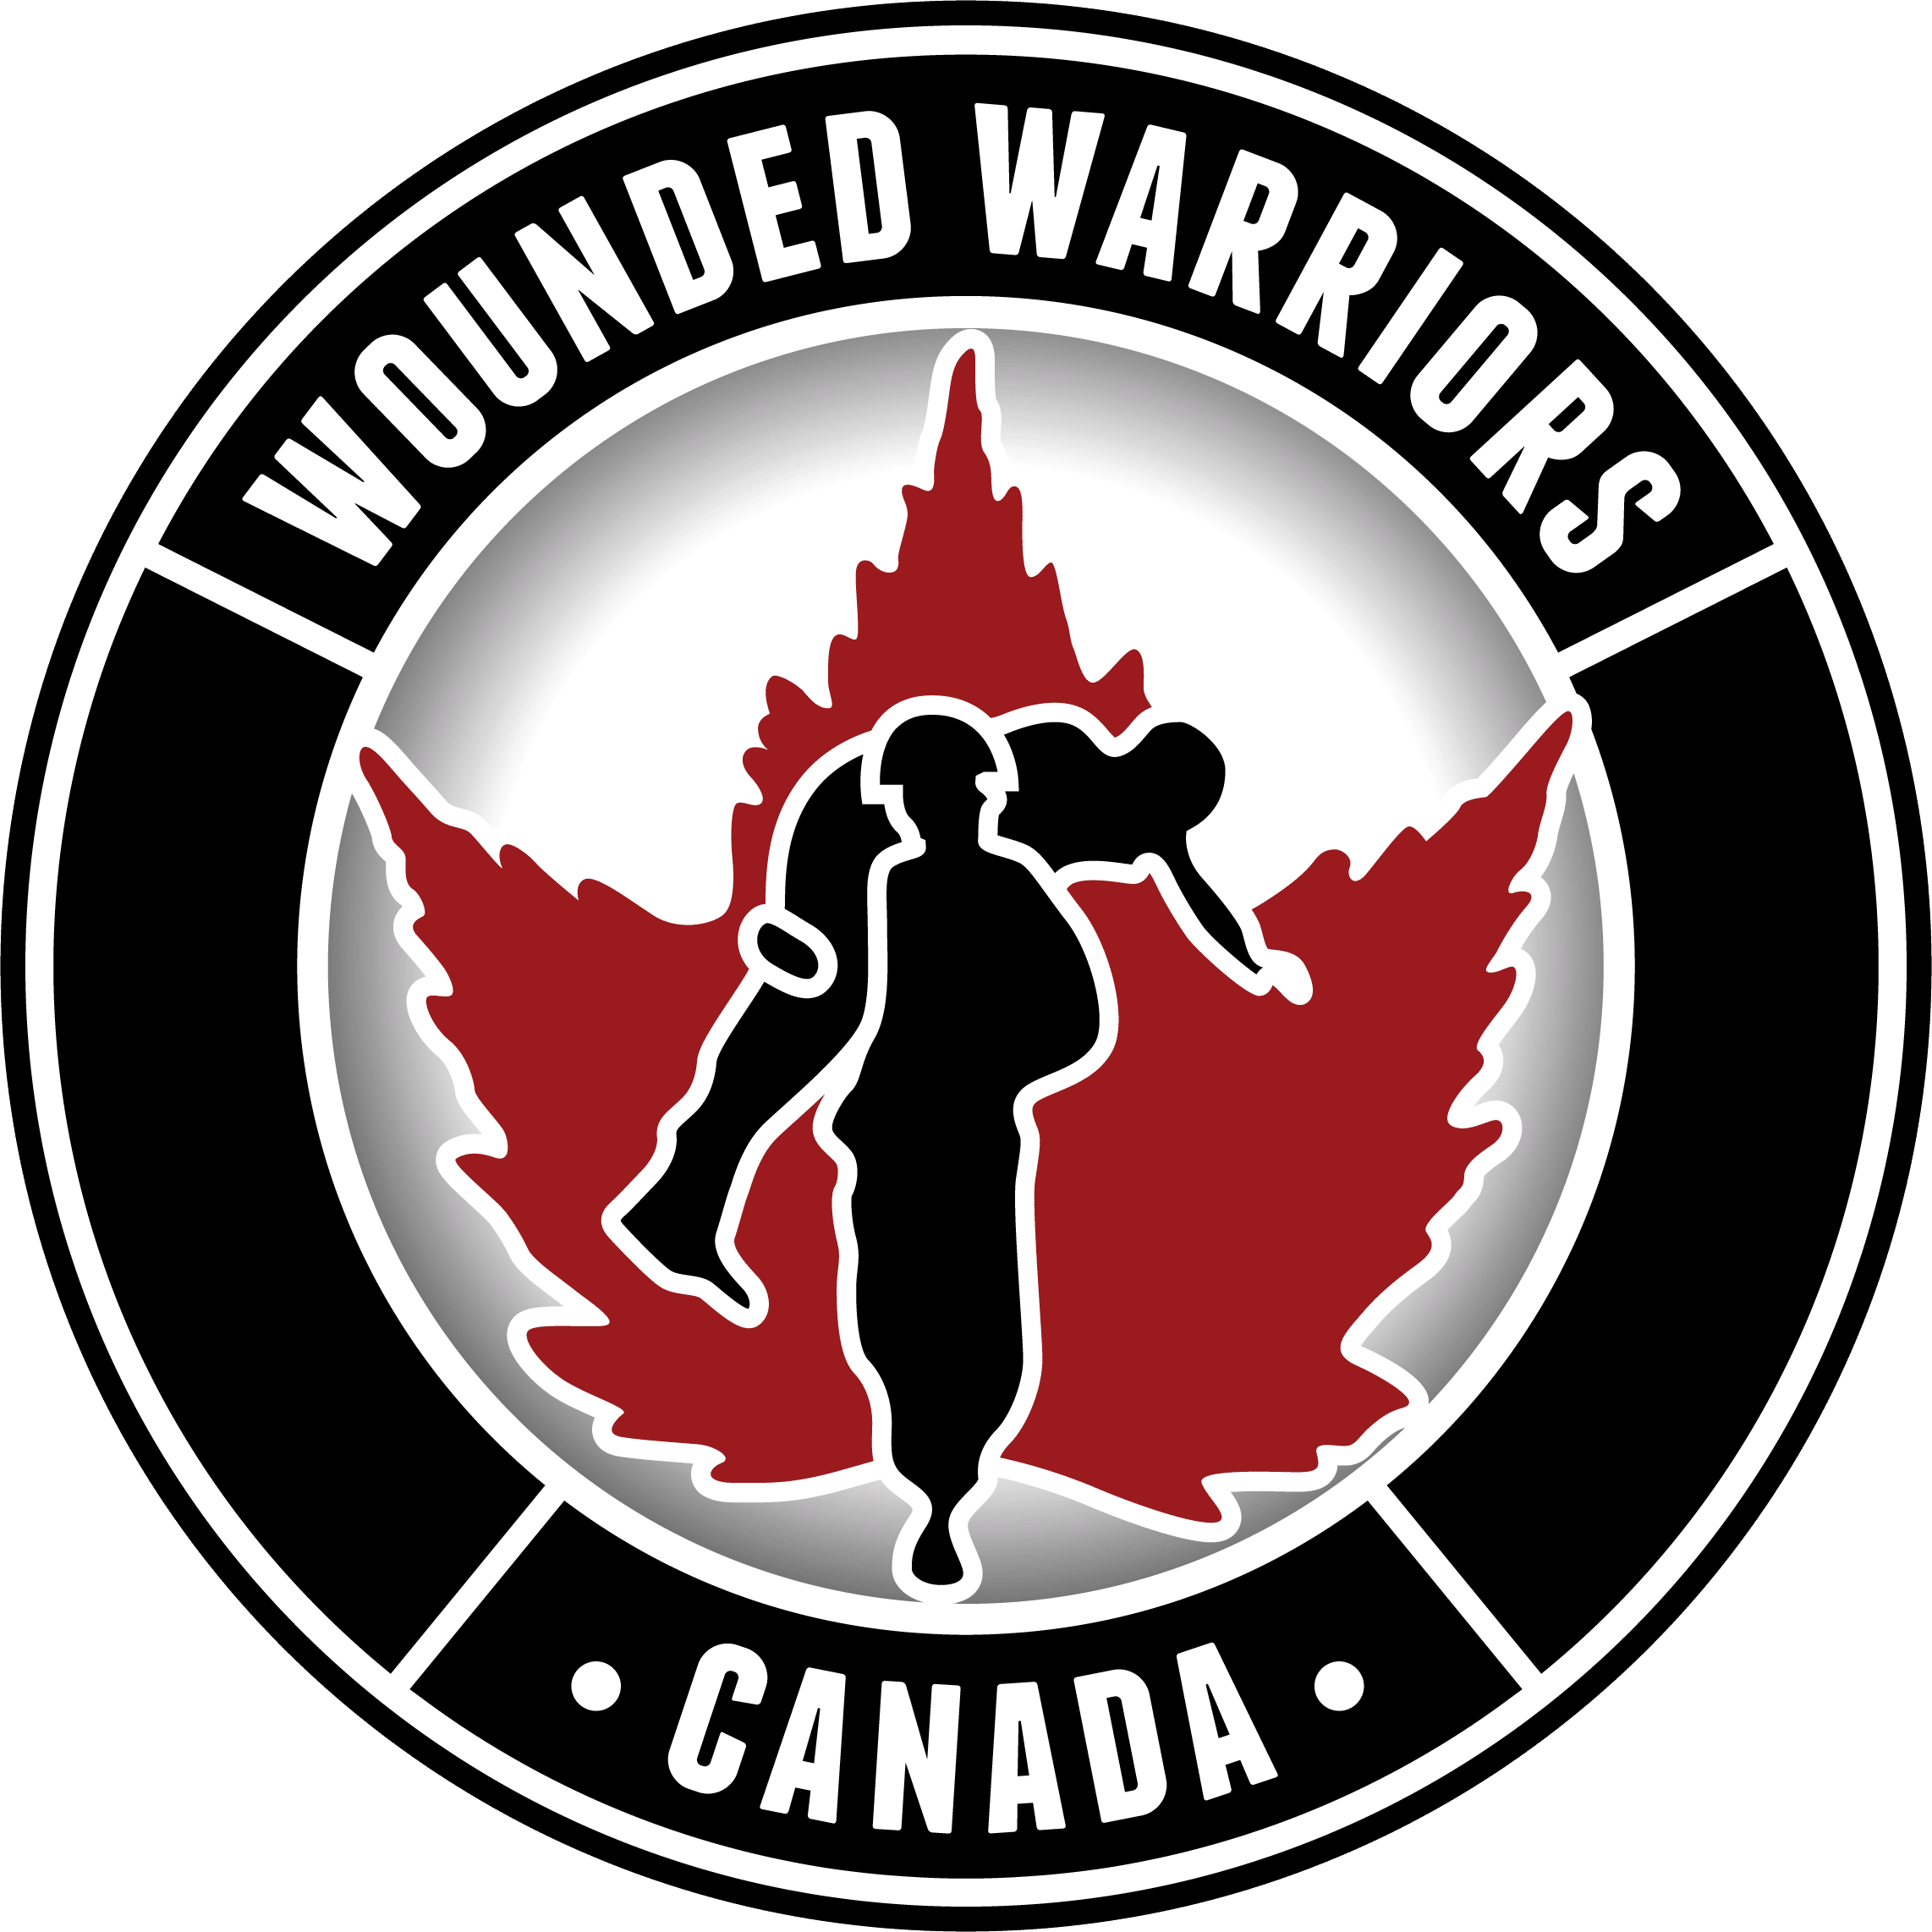 Wounded warriors logo and link to website